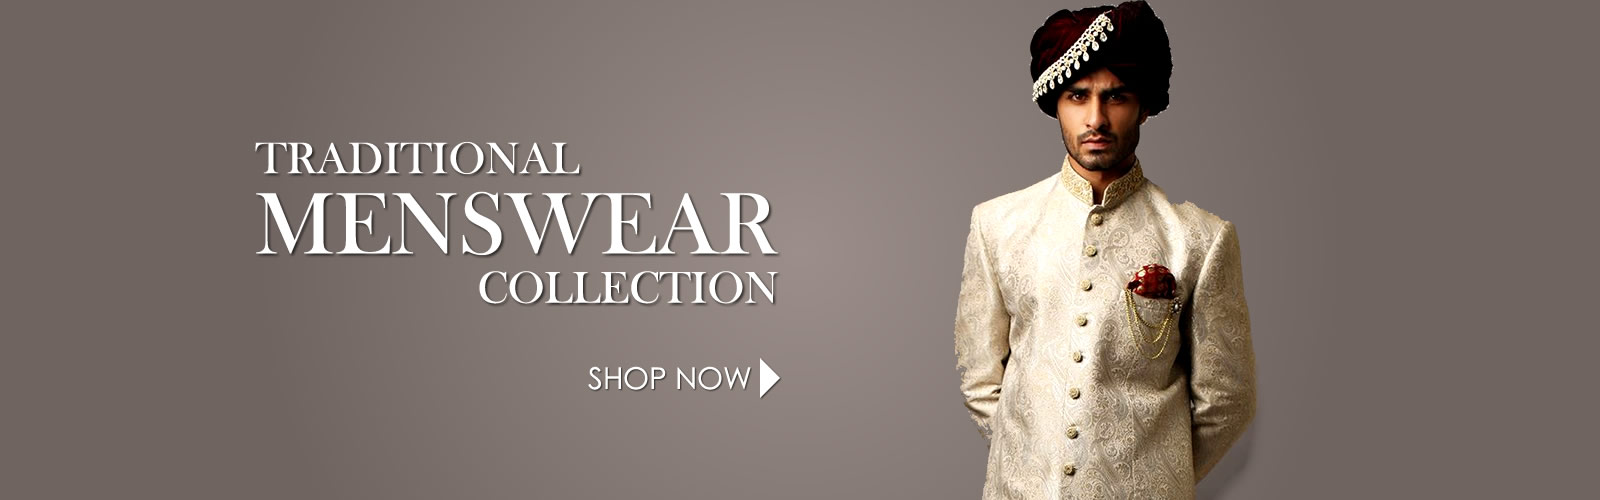 Traditional Menswear Collection